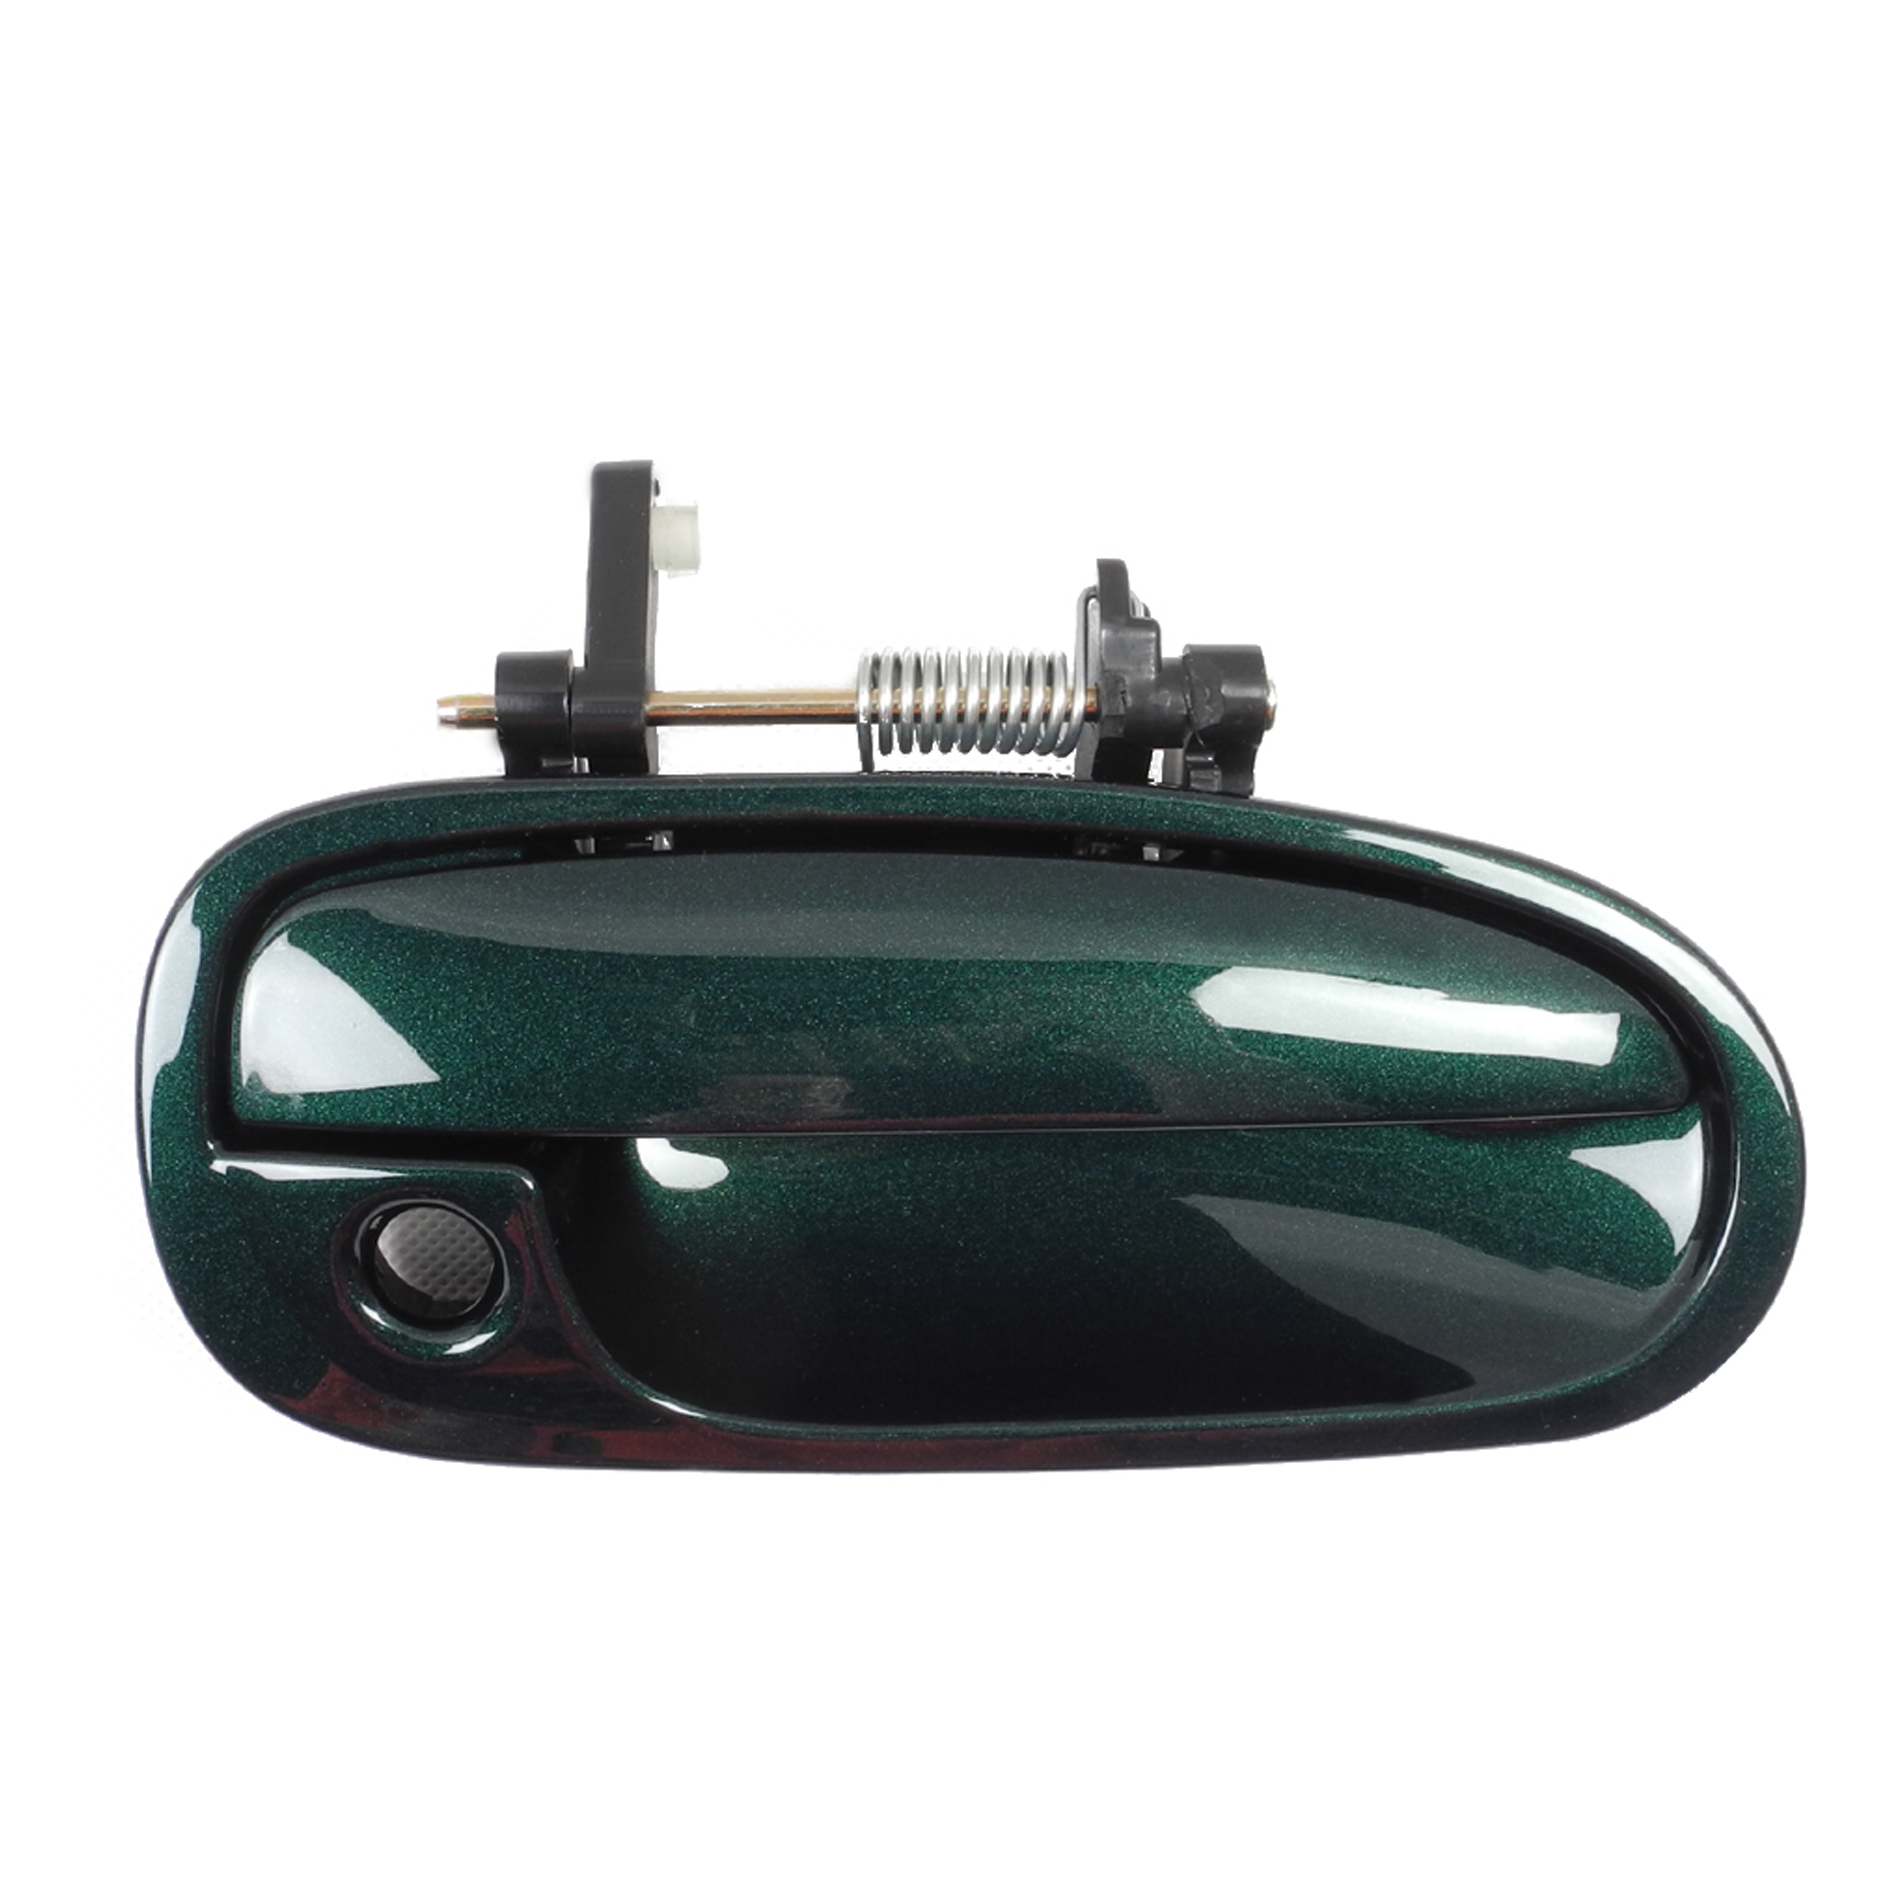 96-00 For CIVIC Front Right G95P Clover Green Pearl Outside Door Handle B3953 Car & Truck Exterior Parts